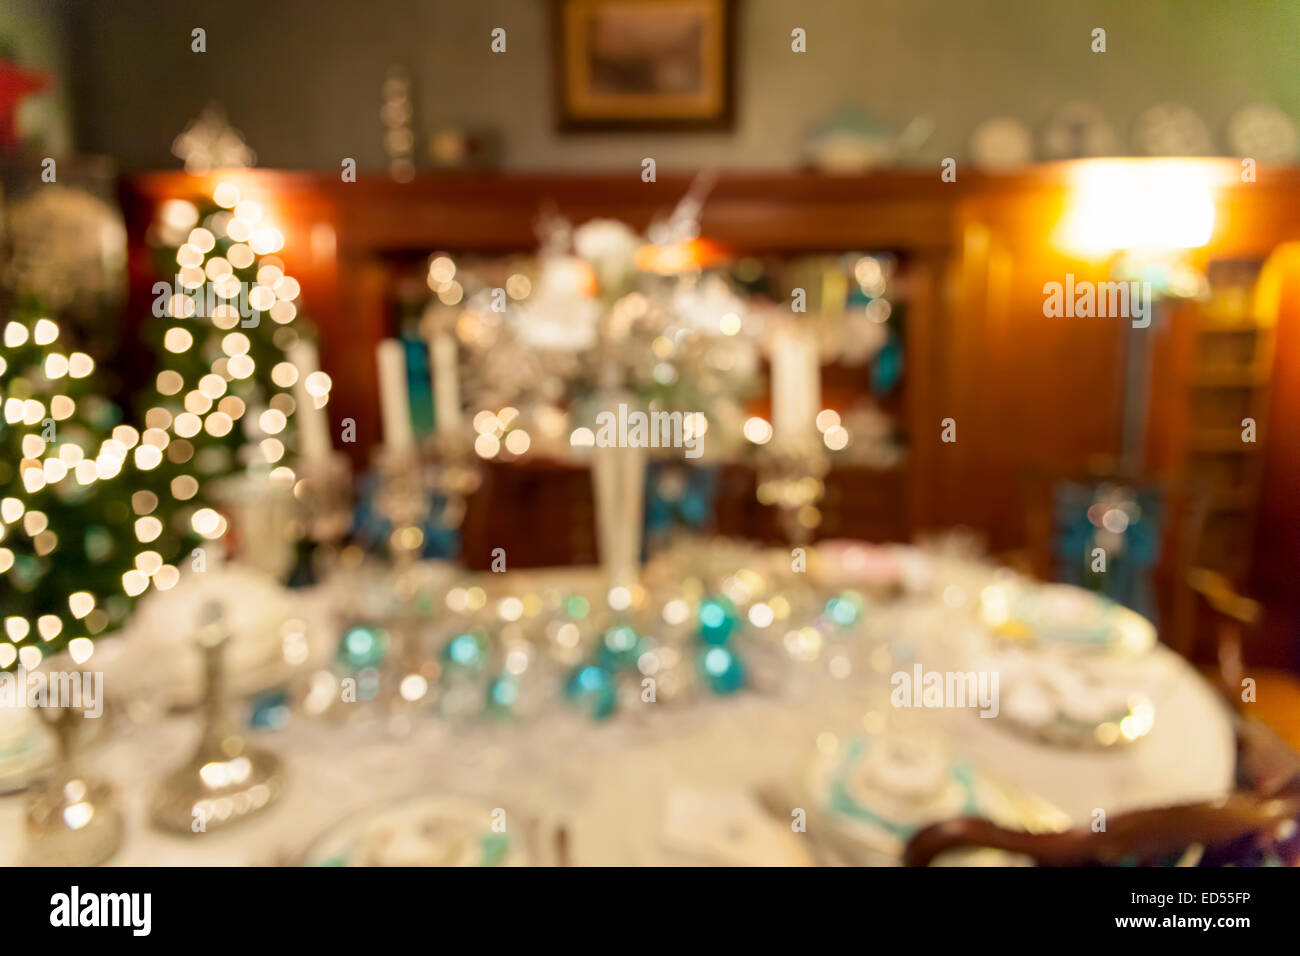 Christmas Day Holiday Celebration Dinner Table Decorations Blurred Stock Photo Alamy